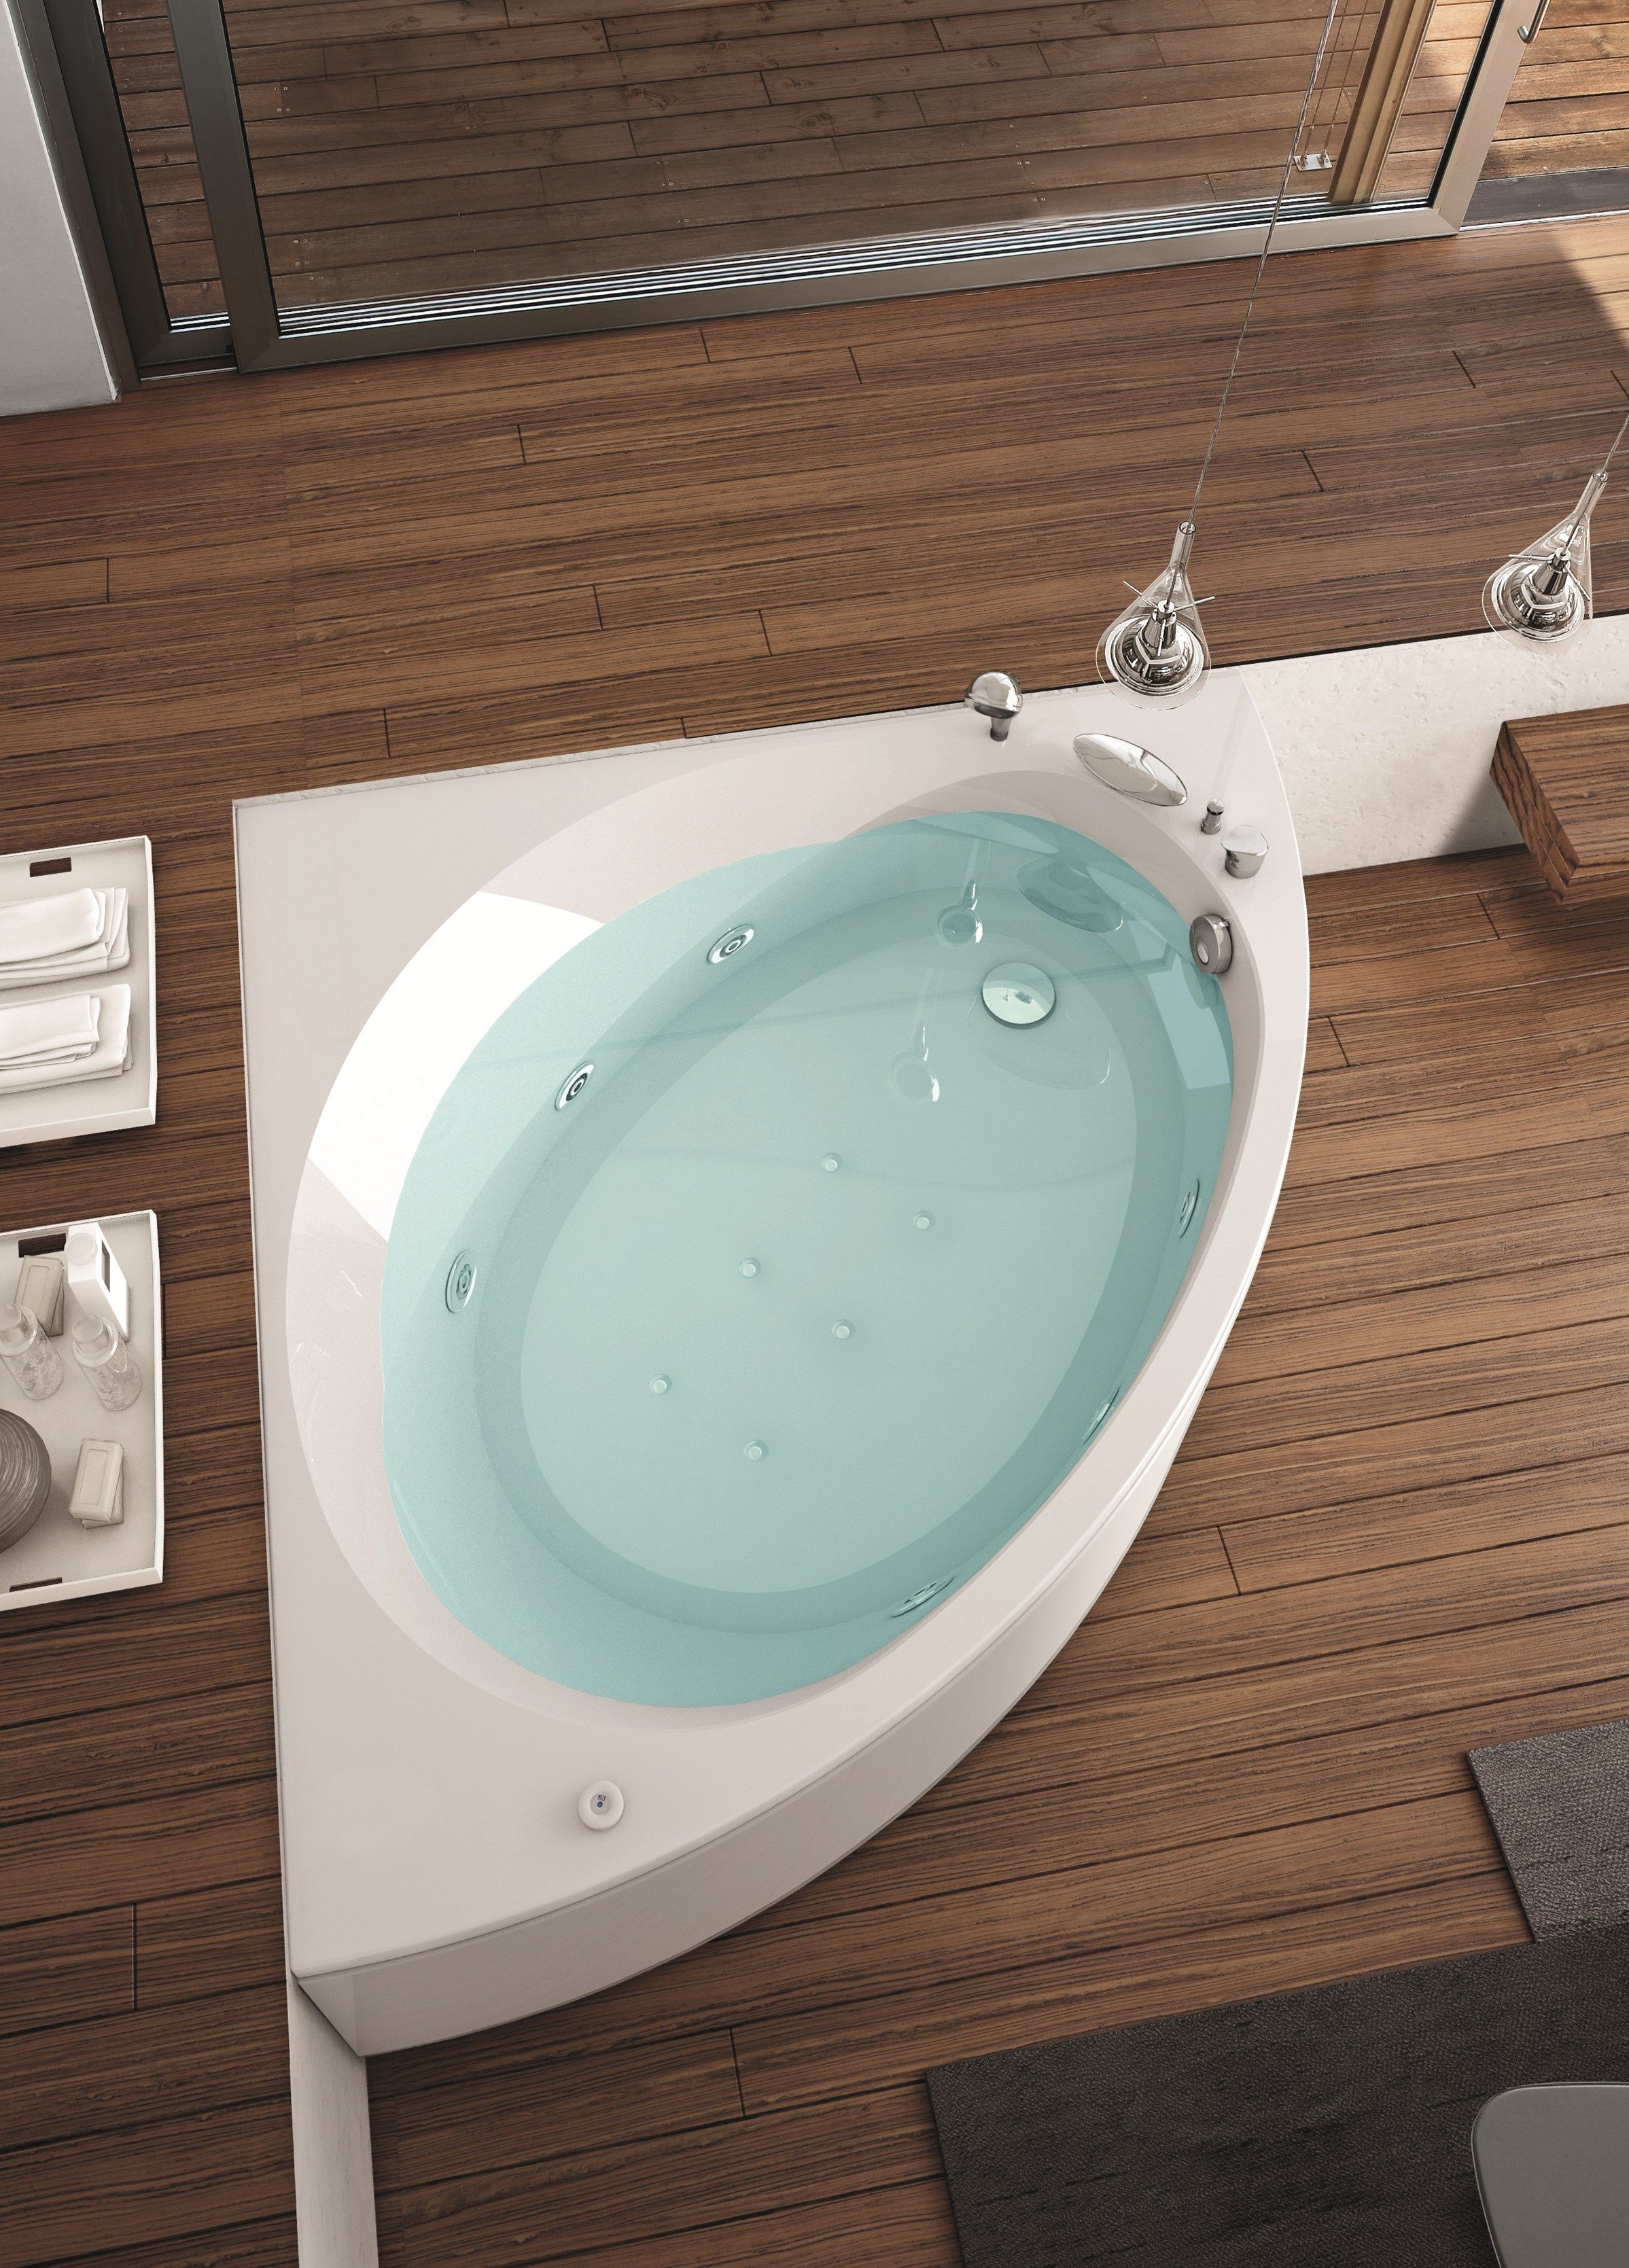 Badewanne 140x75 Pin By Agnes On Bath Tubs In 2019 Eckbadewanne Eckbadewanne